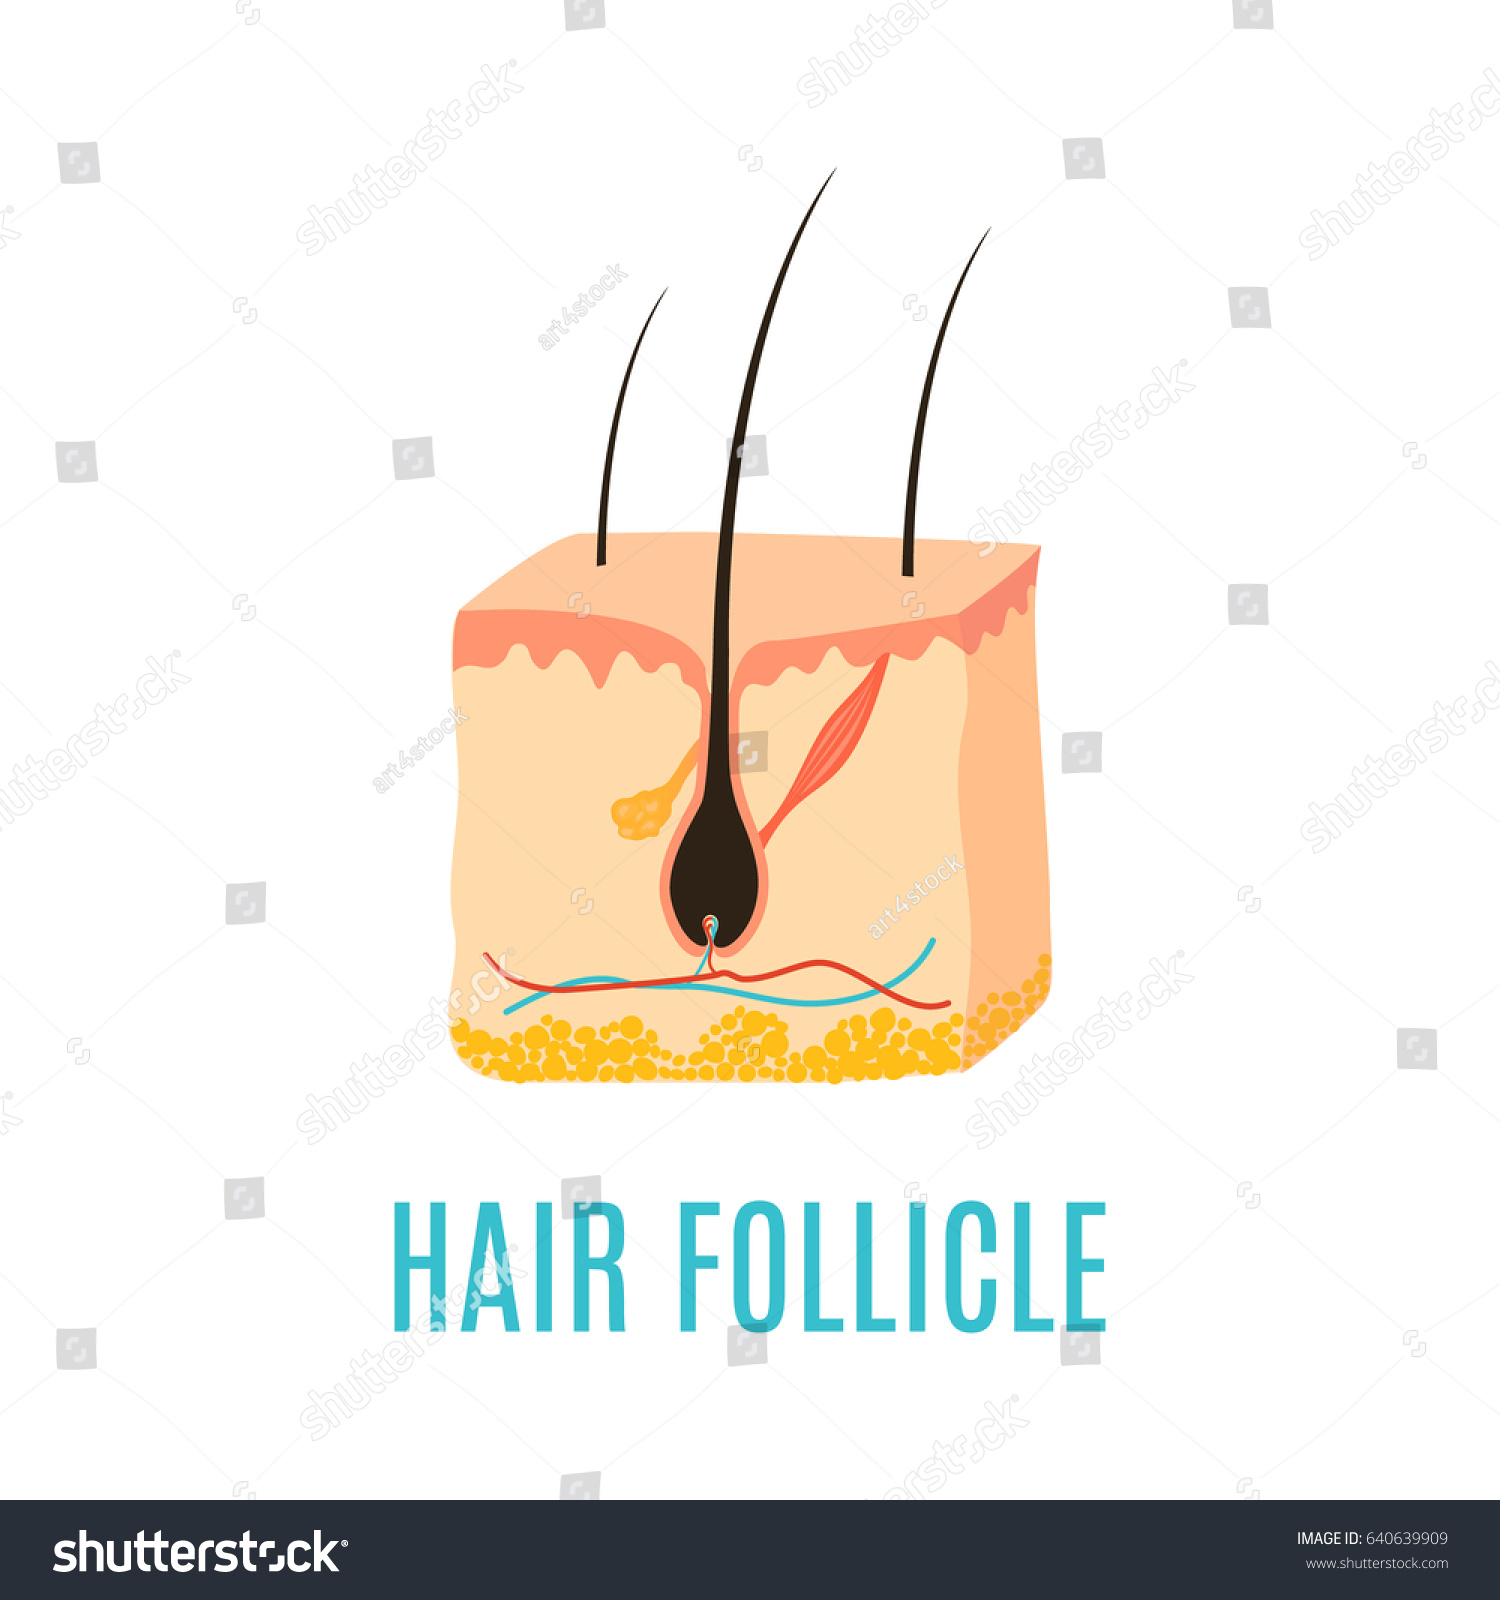 hair follicle diagram  hair bulb medical diagnostics symbol  removal,  treatment and transplantation concept